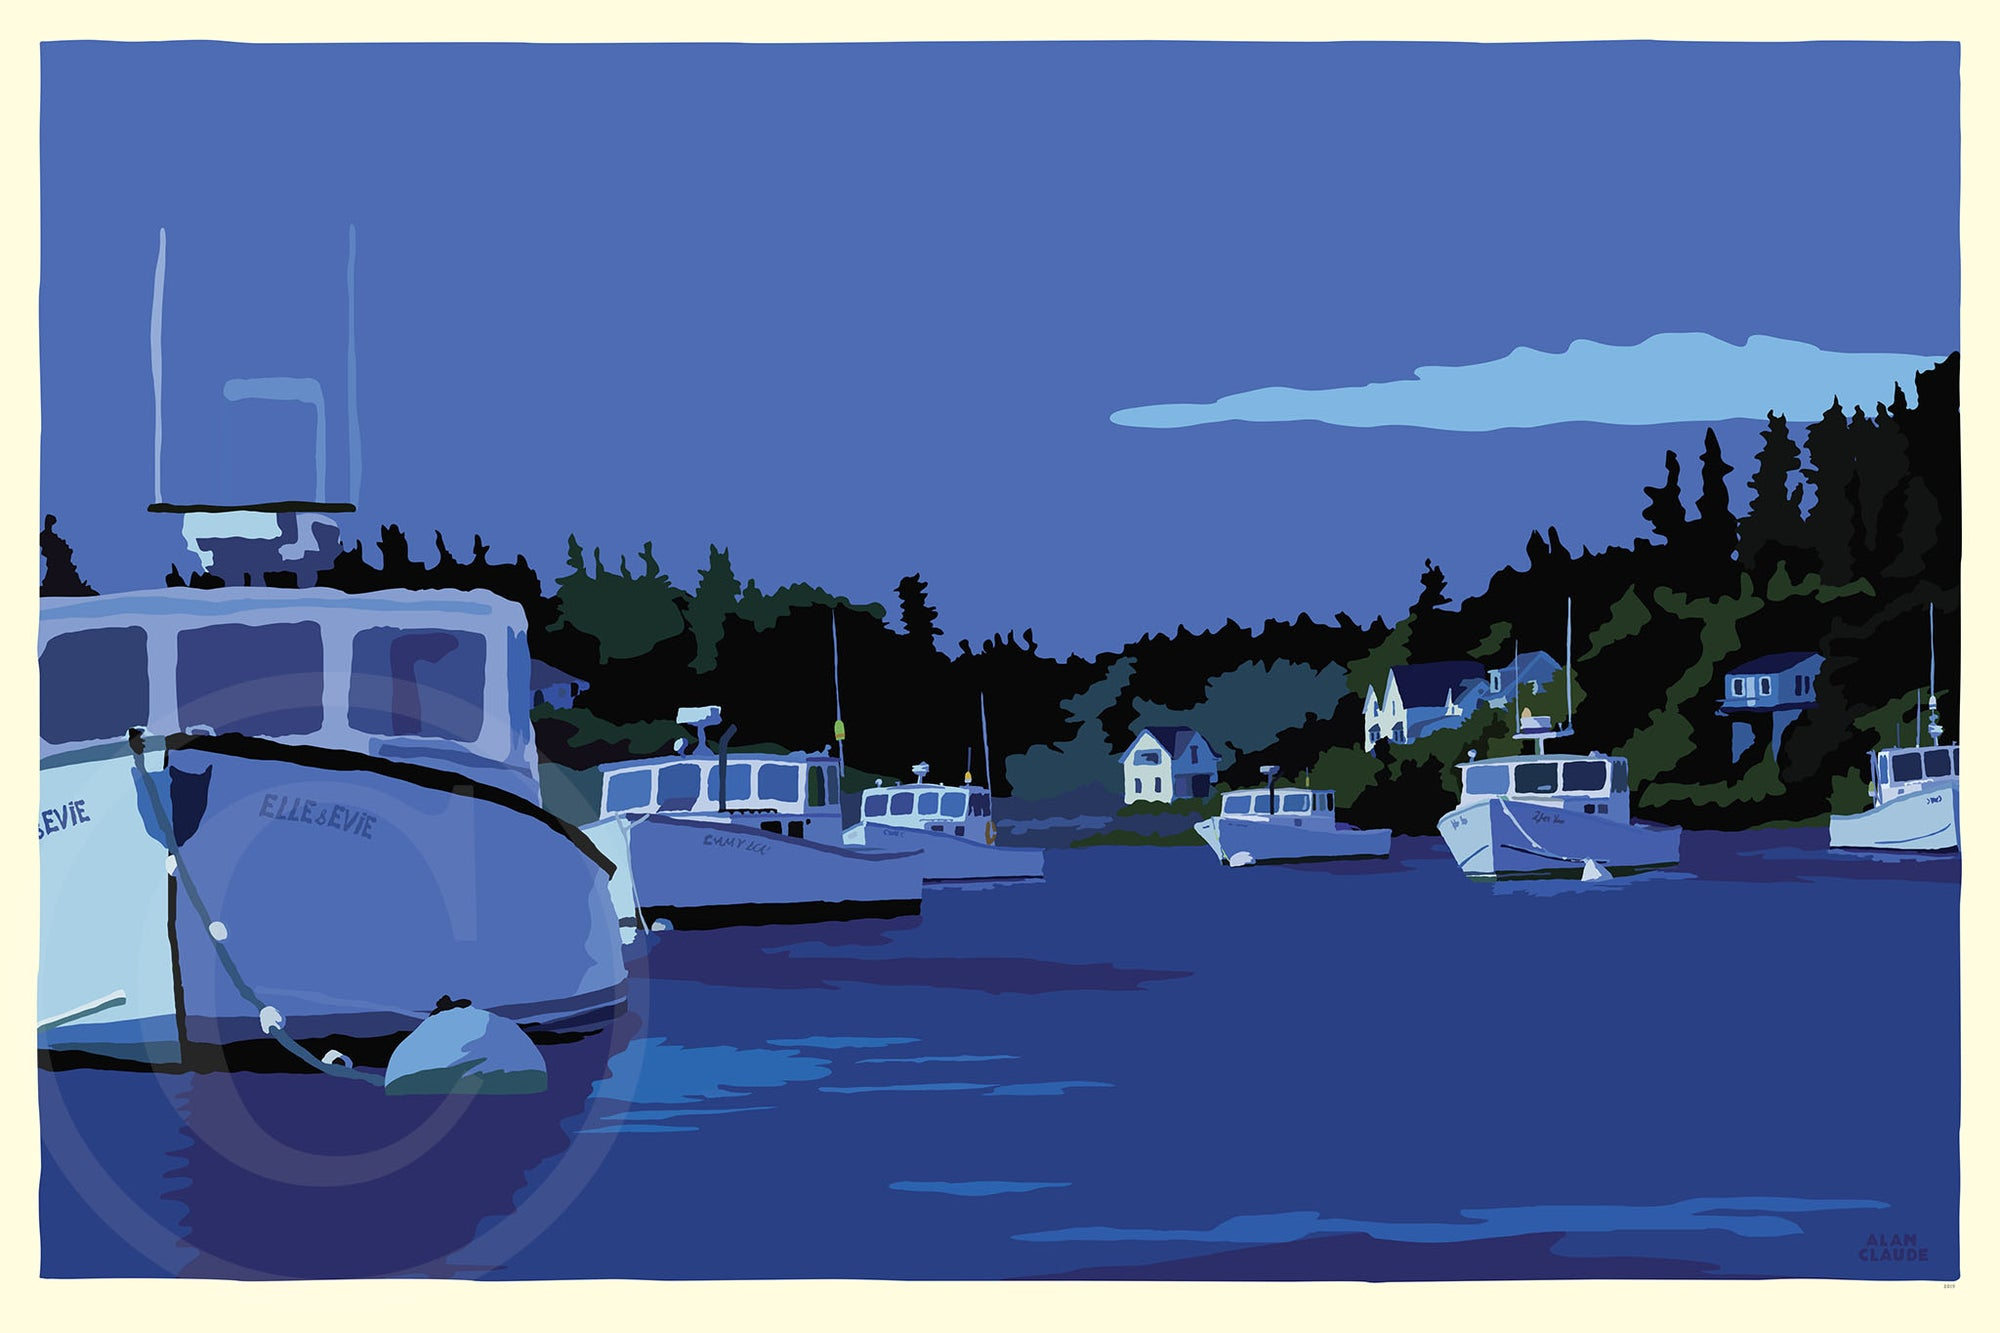 "Moonlight Over Port Clyde Art Print 24"" x 36"" Wall Poster - Maine by Alan Claude"